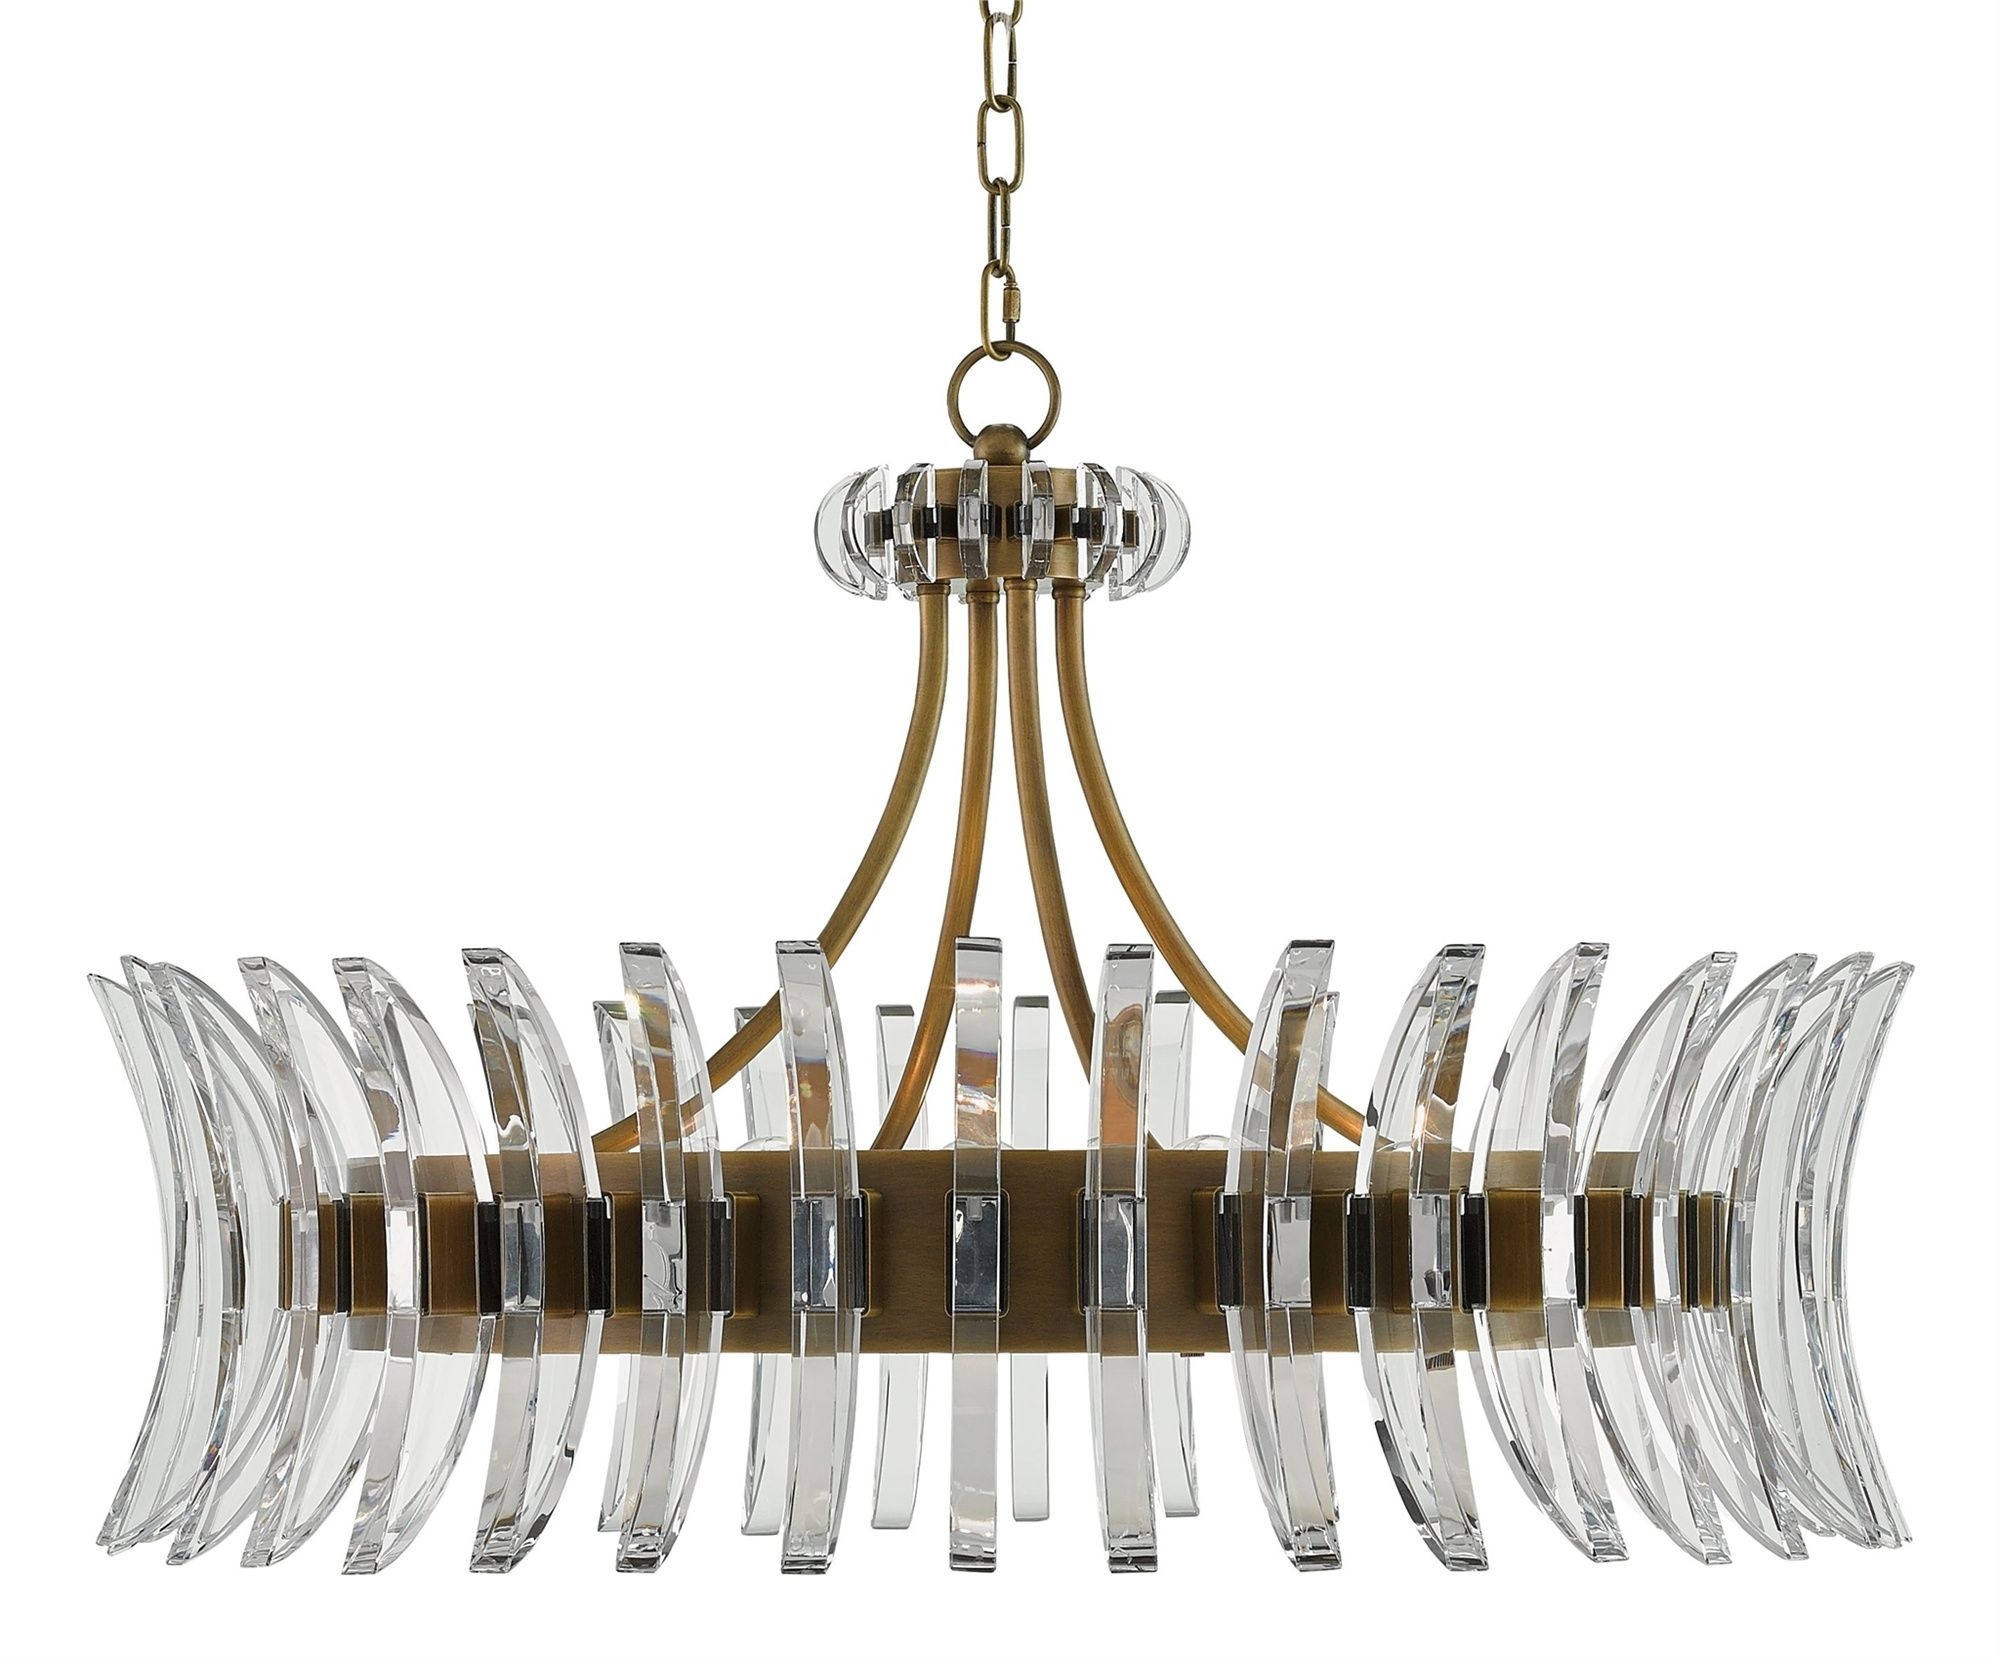 Currey and company 9000 0014 coquette chandelier in antique brass currey and company 9000 0014 coquette chandelier in antique brass arubaitofo Image collections